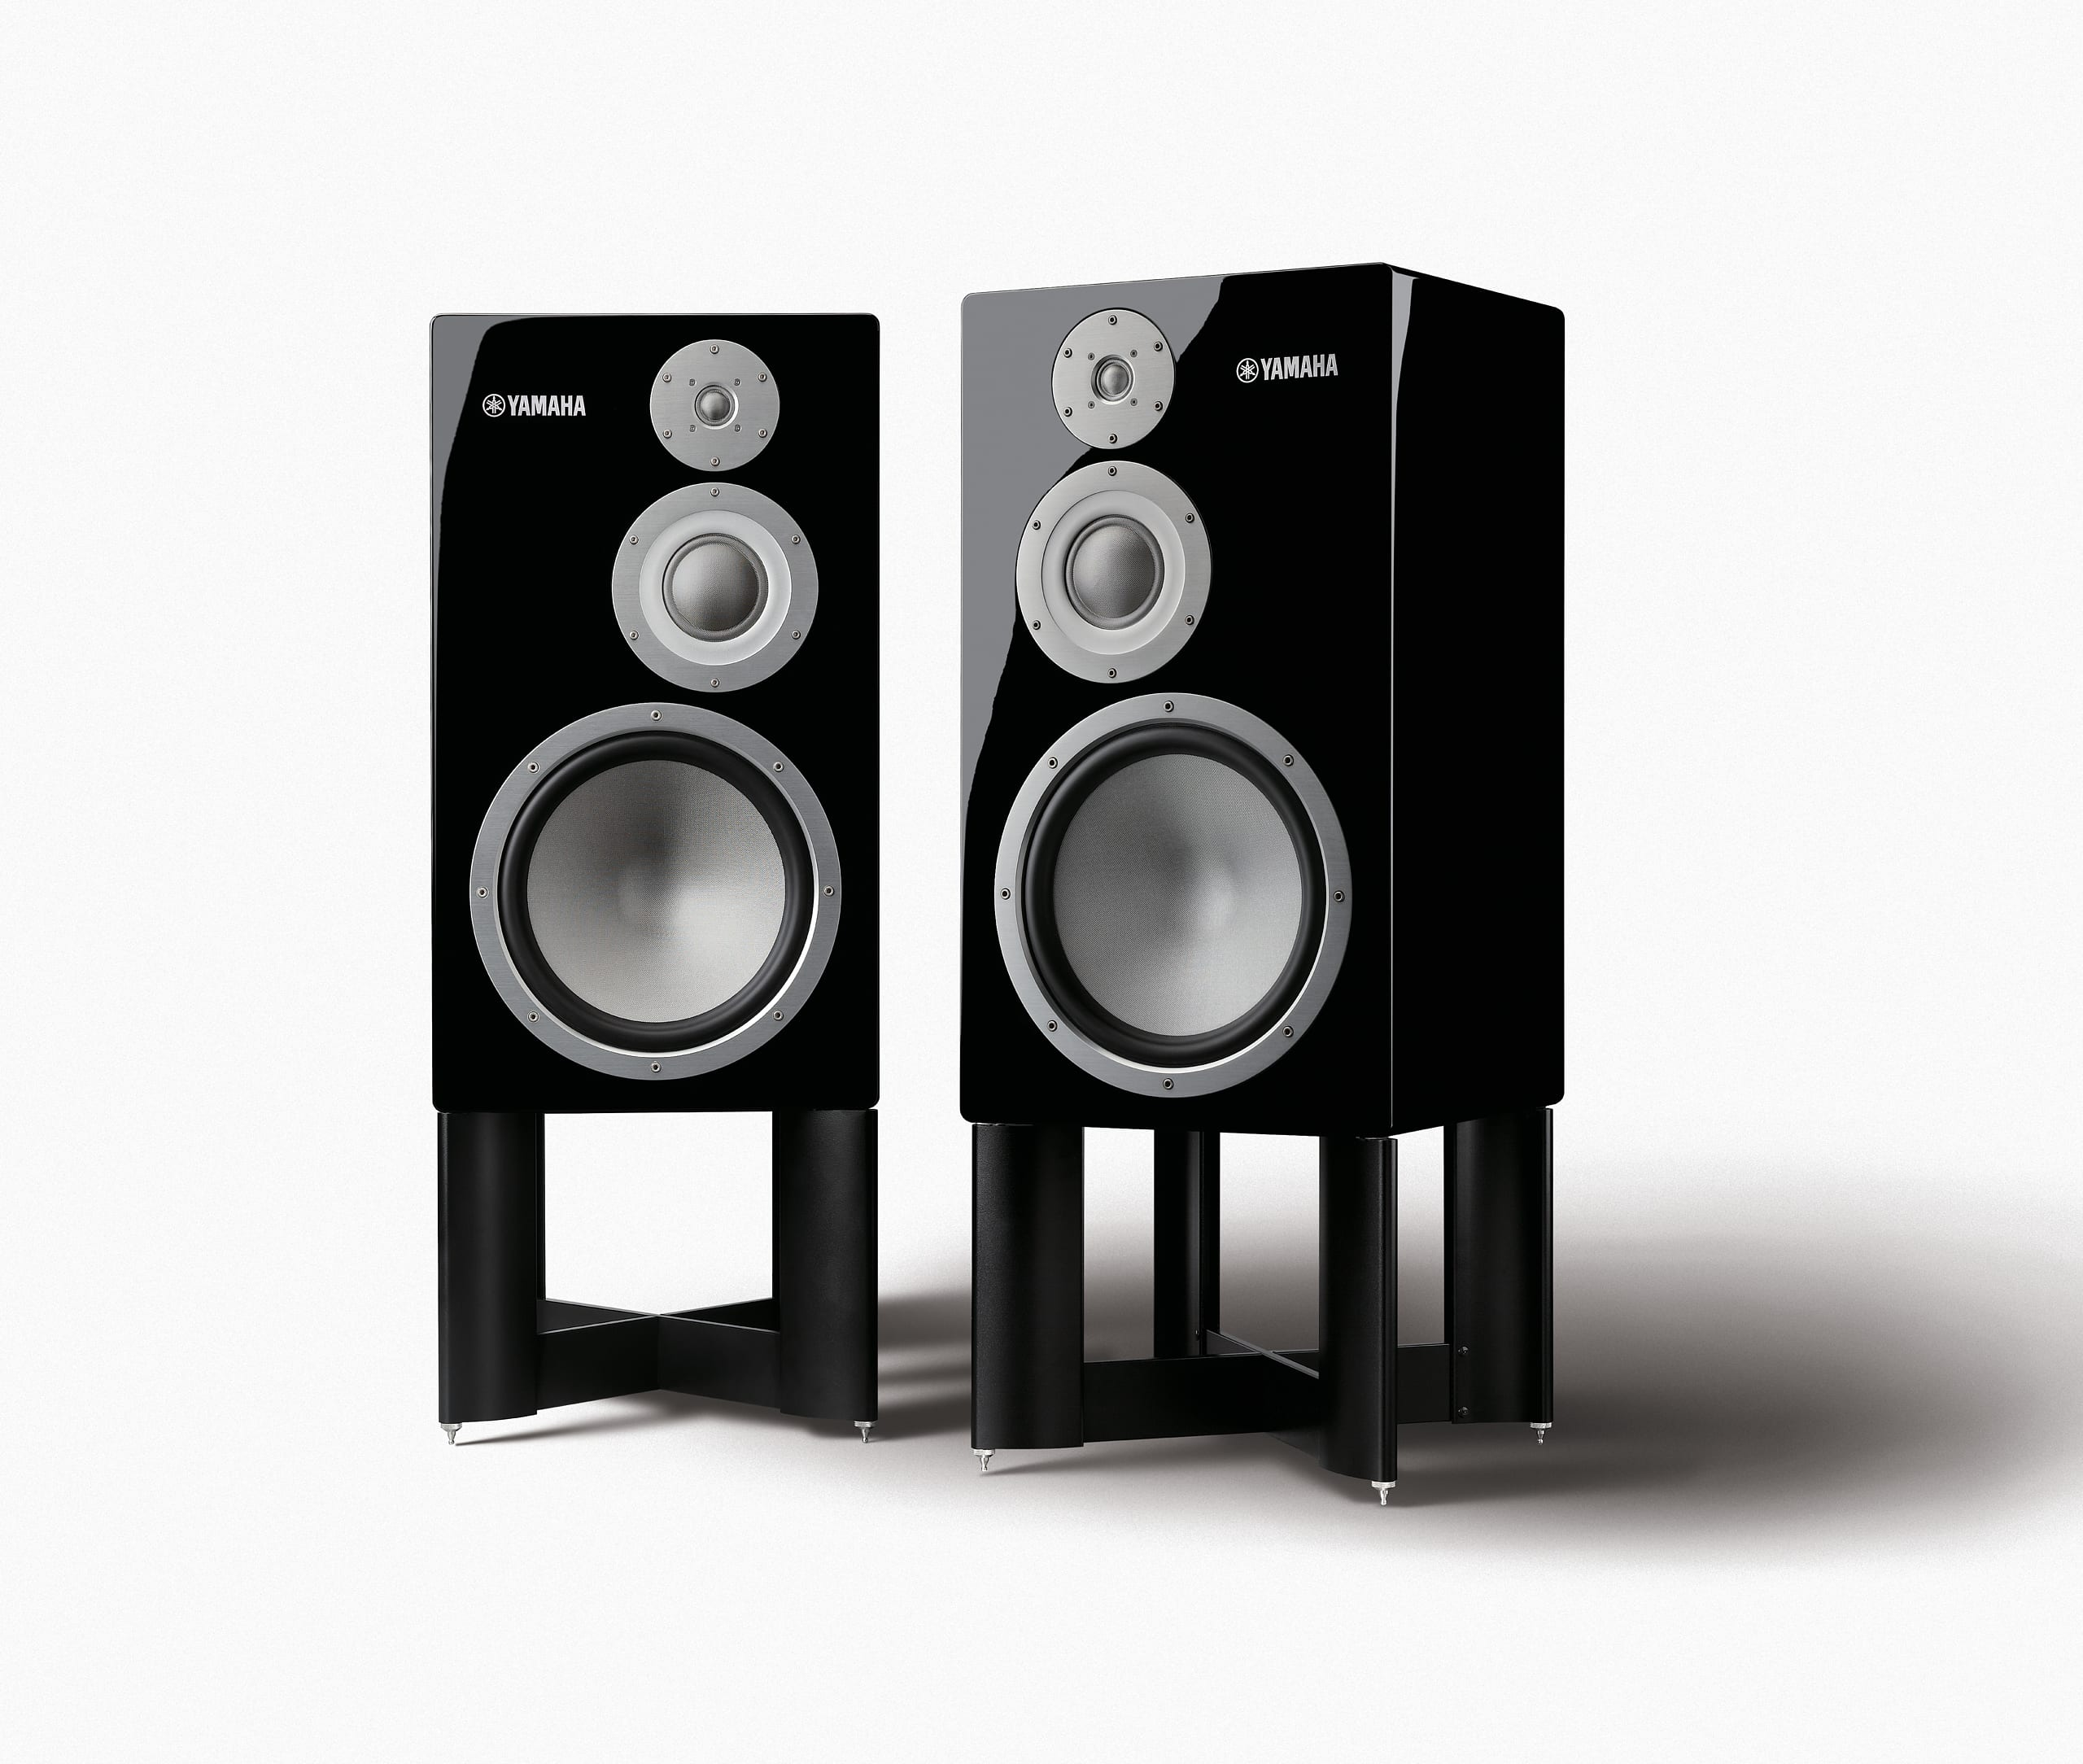 2020 Product of the Year Awards | High-End Loudspeaker of the Year